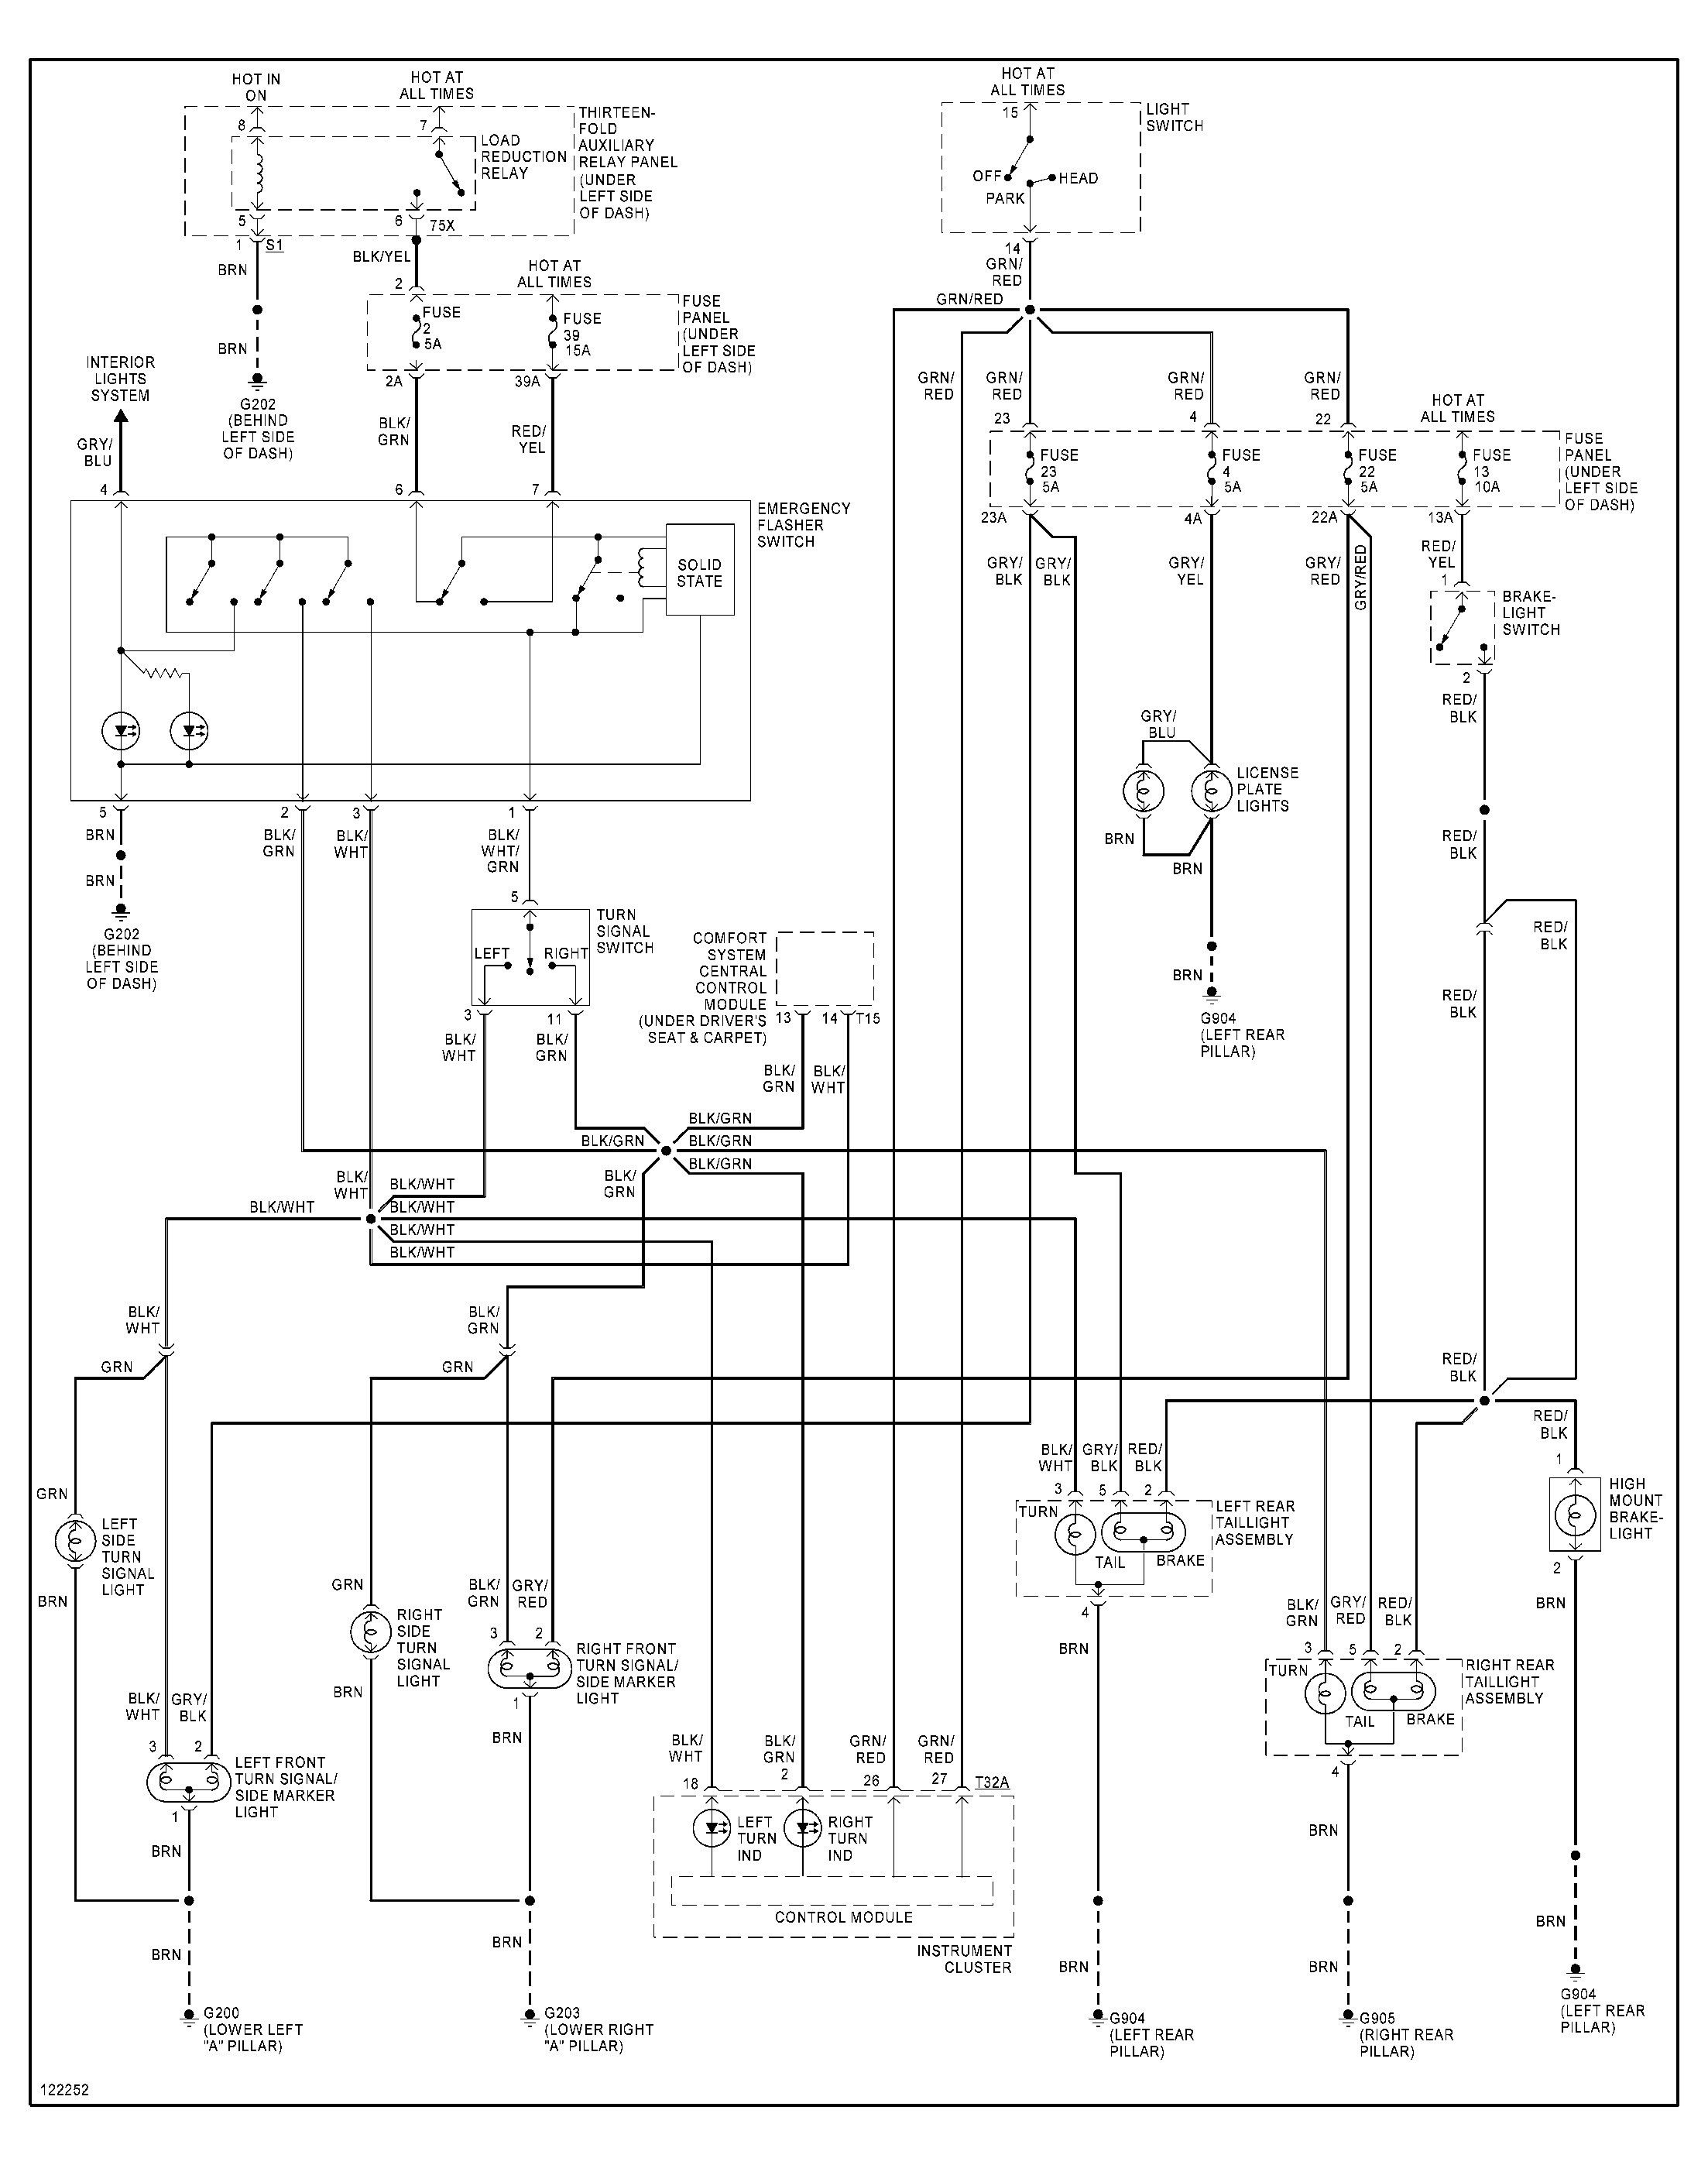 Unique Audi A4 B8 Headlight Wiring Diagram  Diagram  Diagramtemplate  Diagramsample